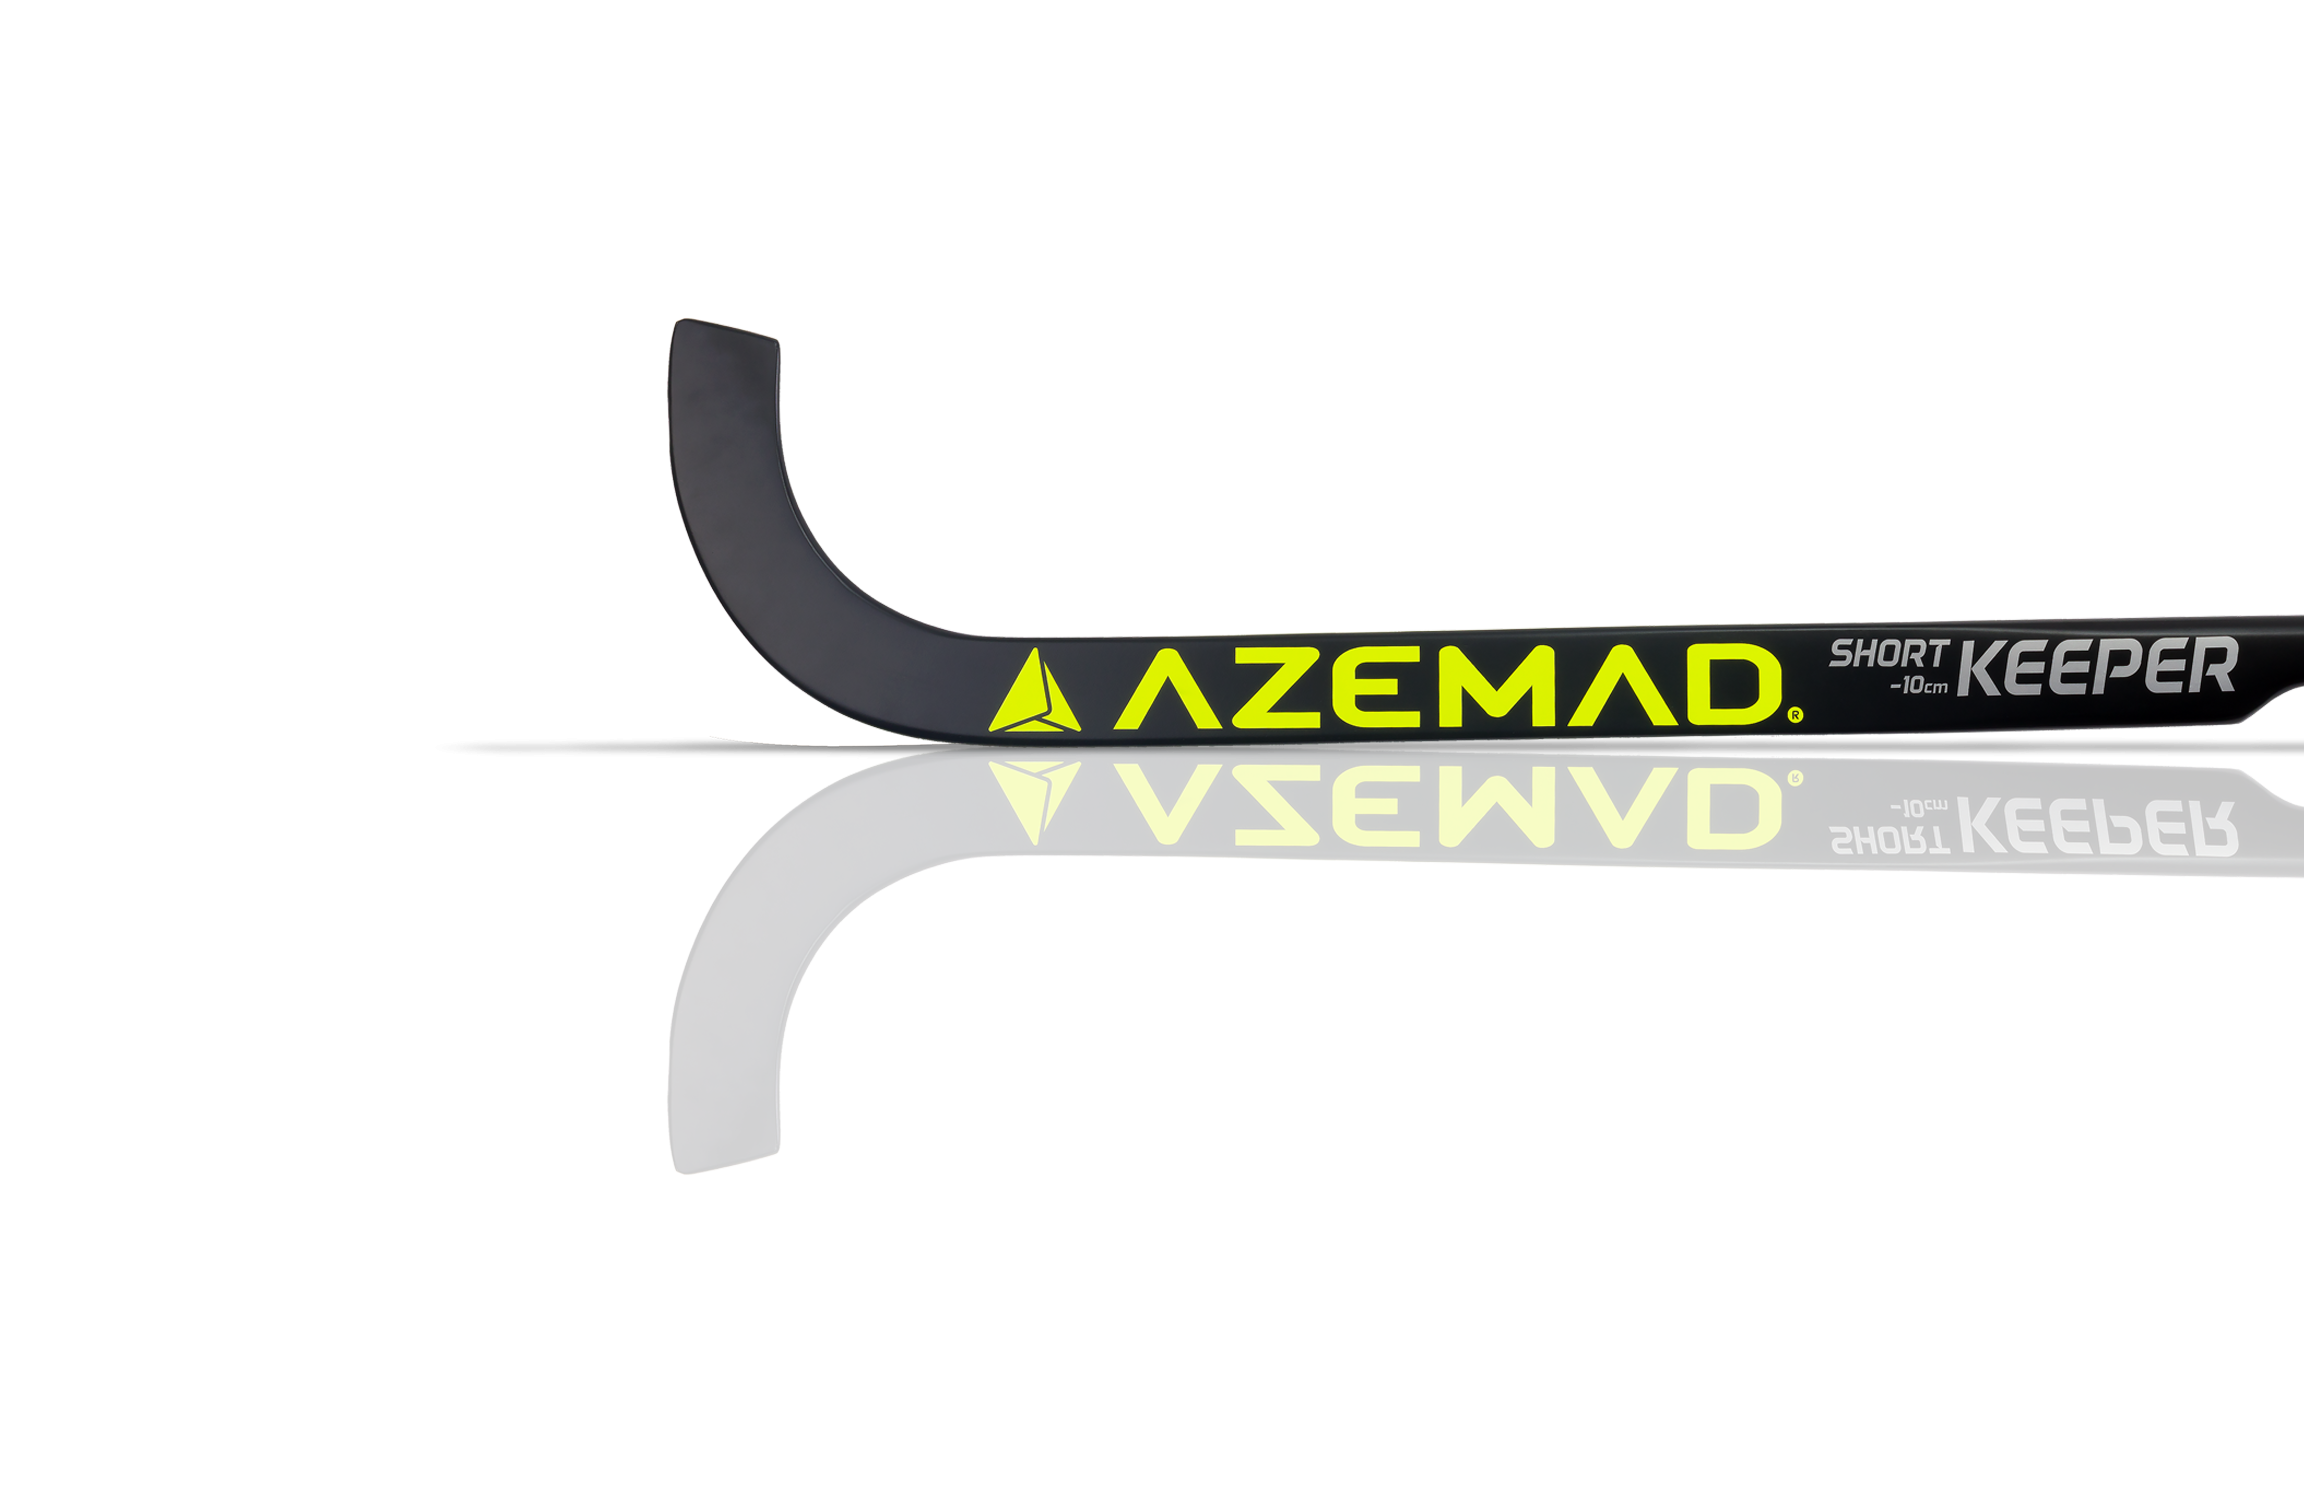 AZEMAD Keeper Short